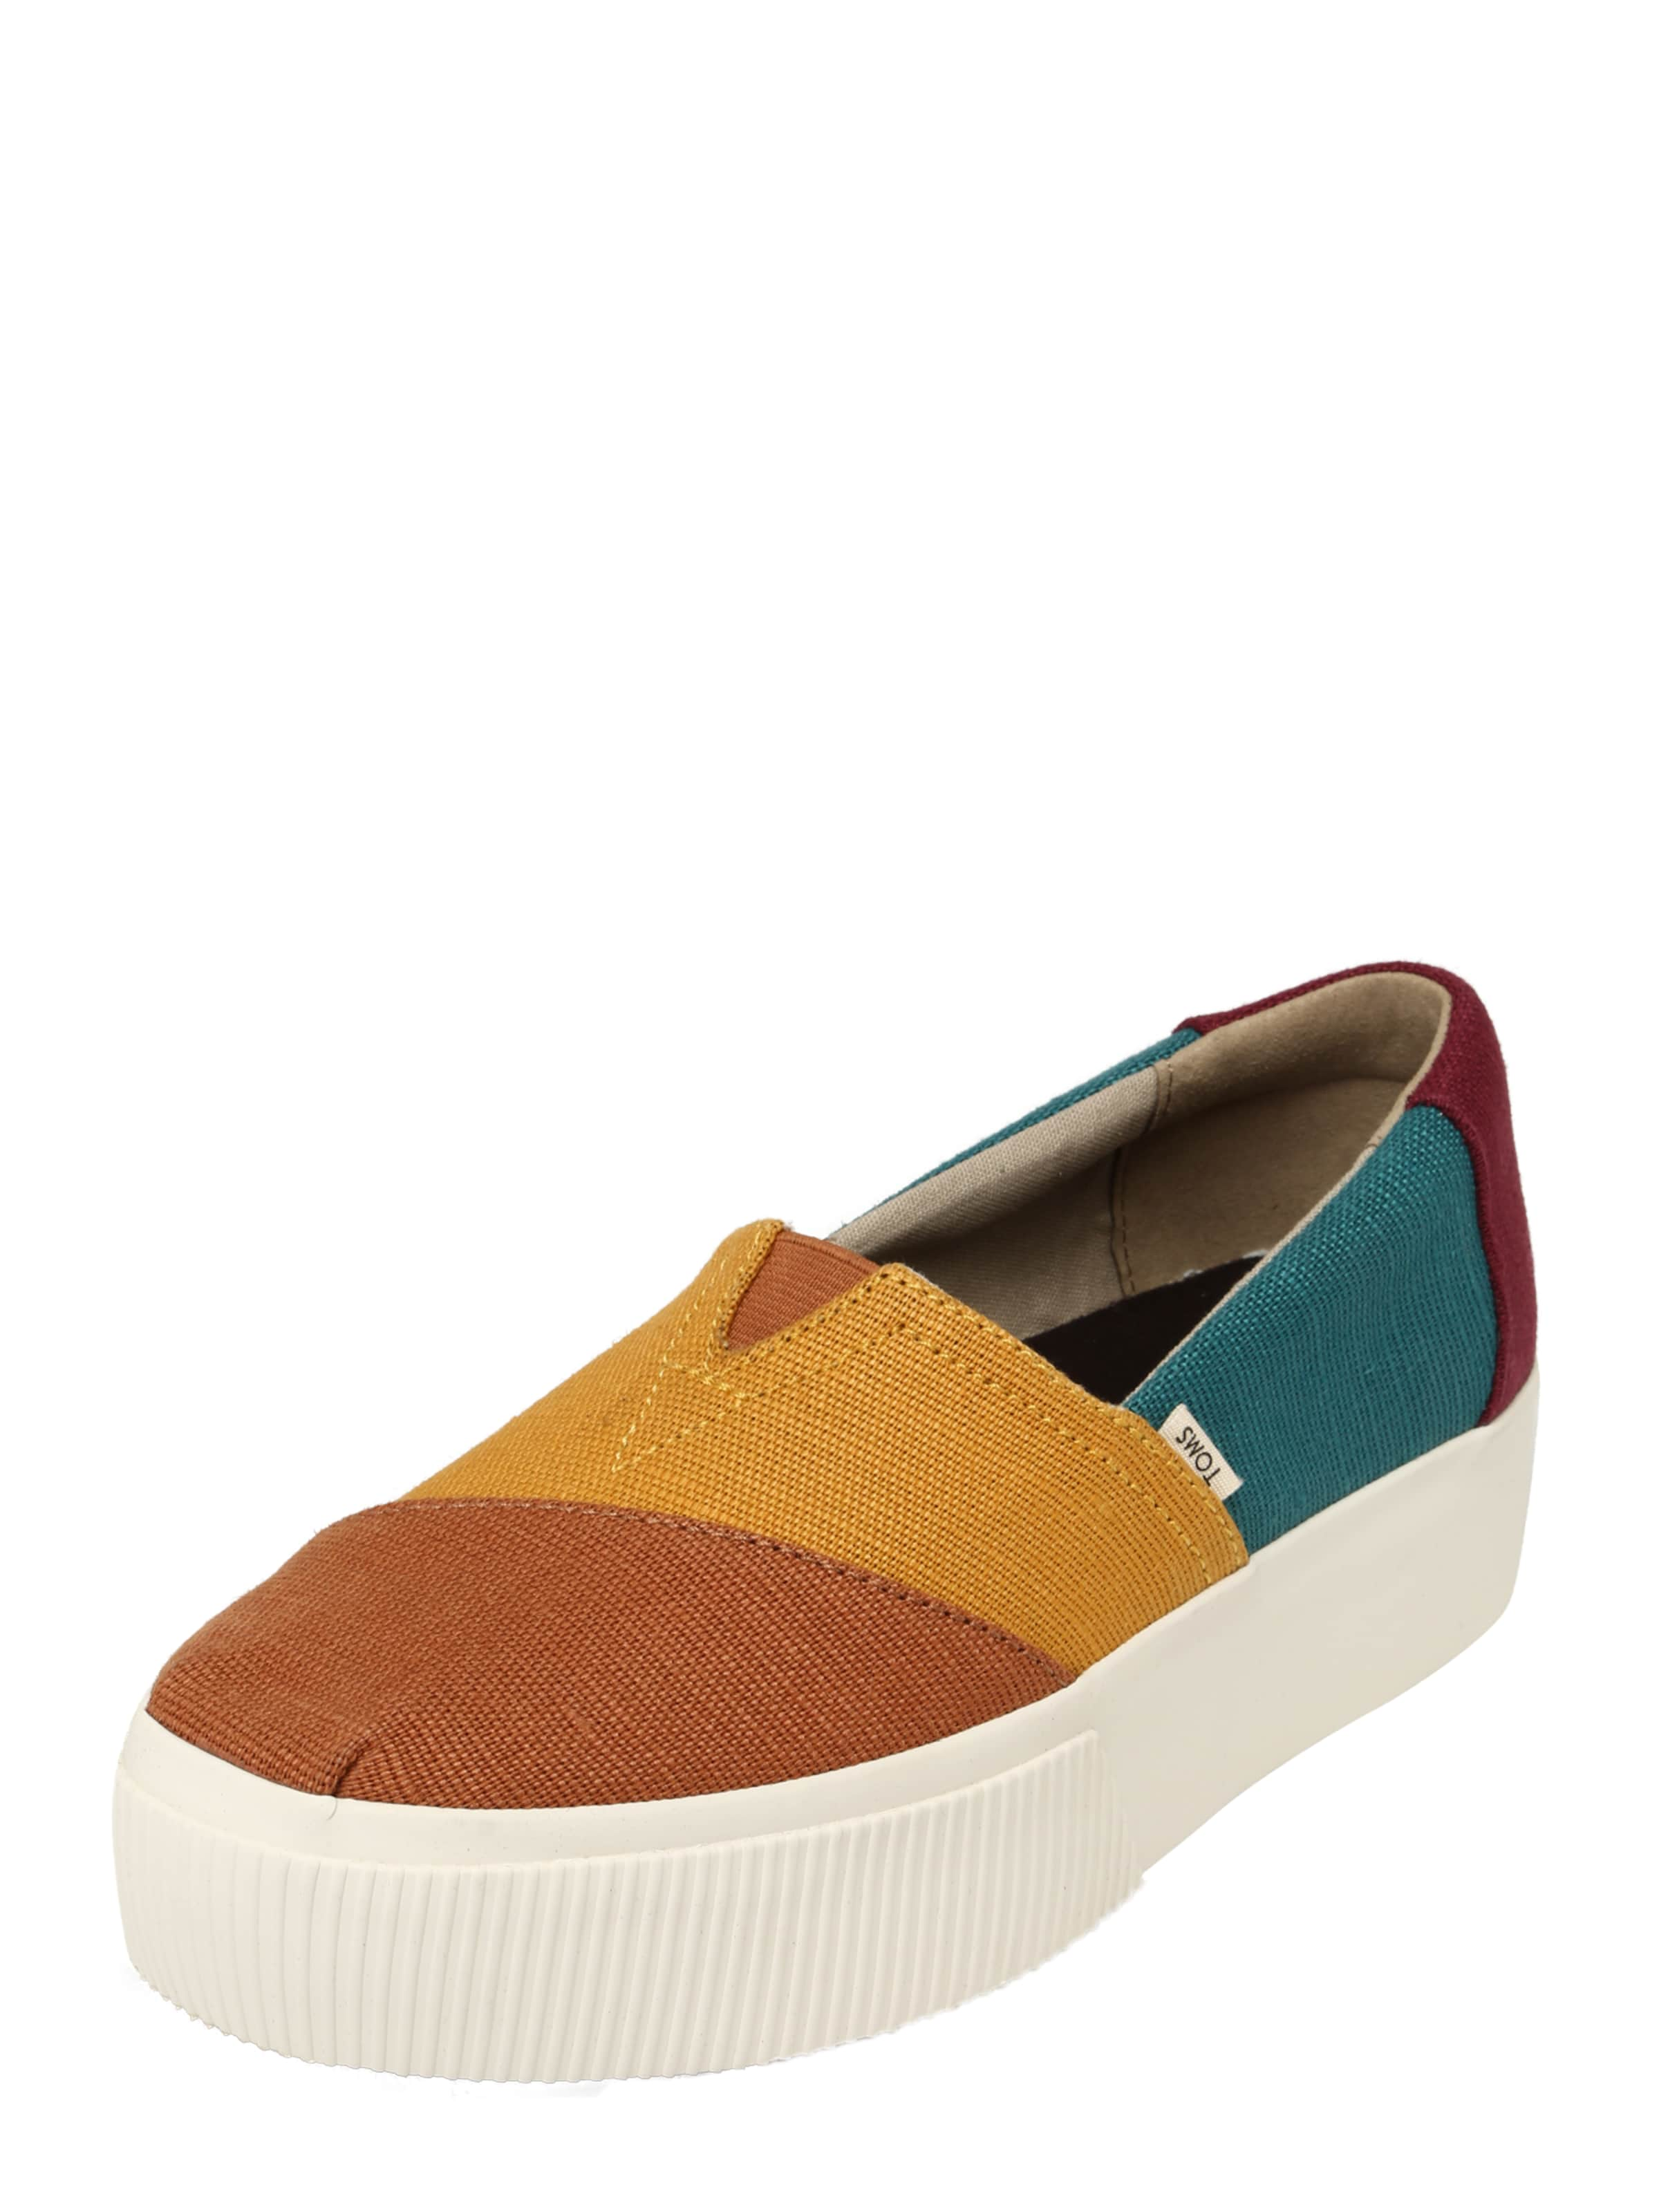 Mélange On De Couleurs Toms En 'alpargata Boardwalk' Slip kXTiuOPZ